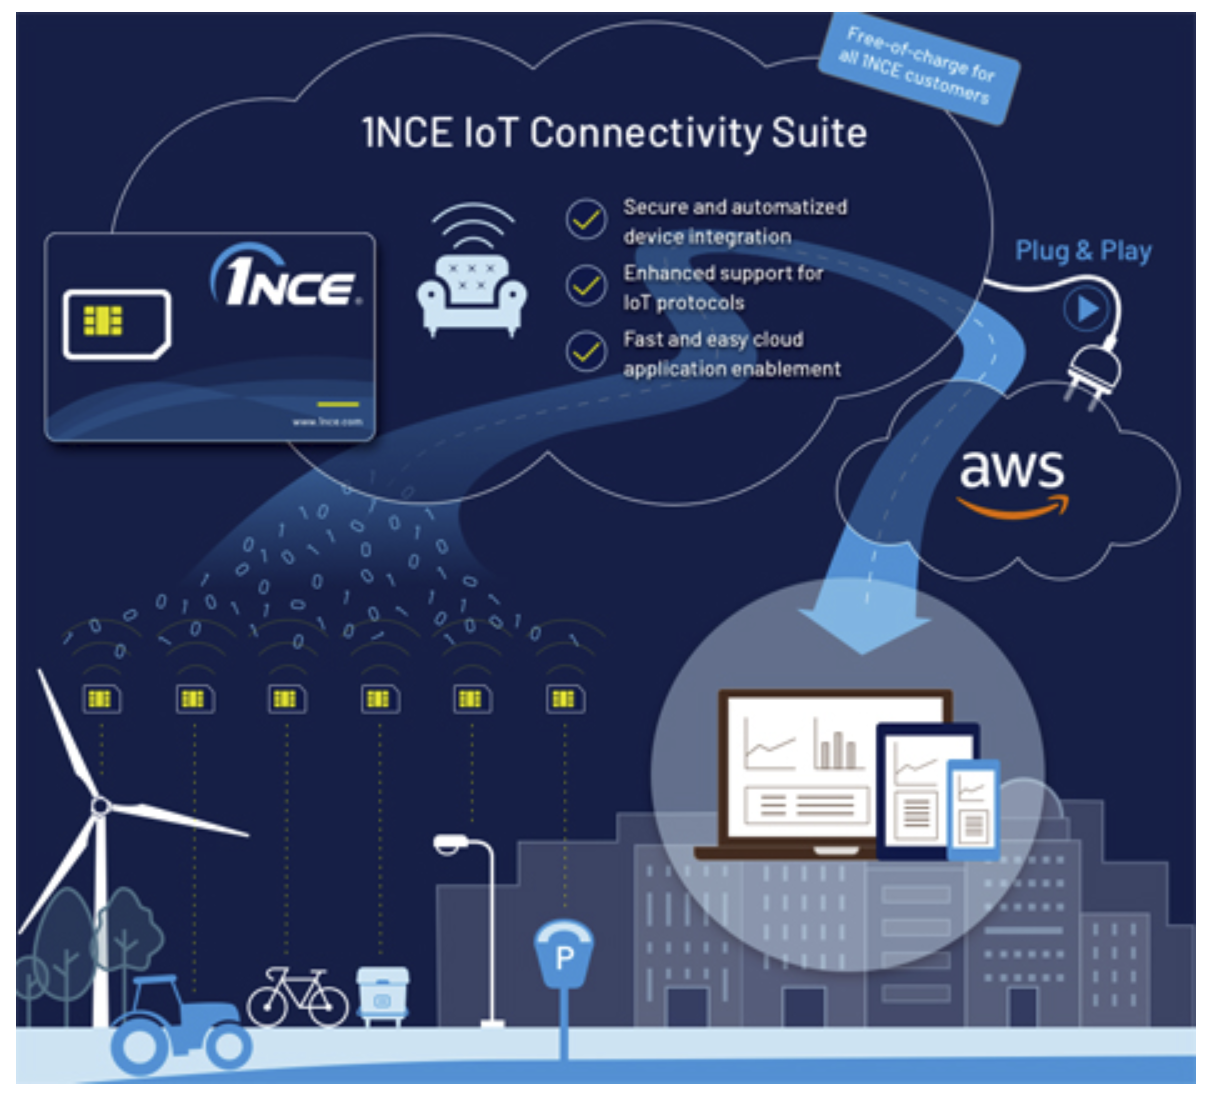 1NCE provides IoT device management service suite